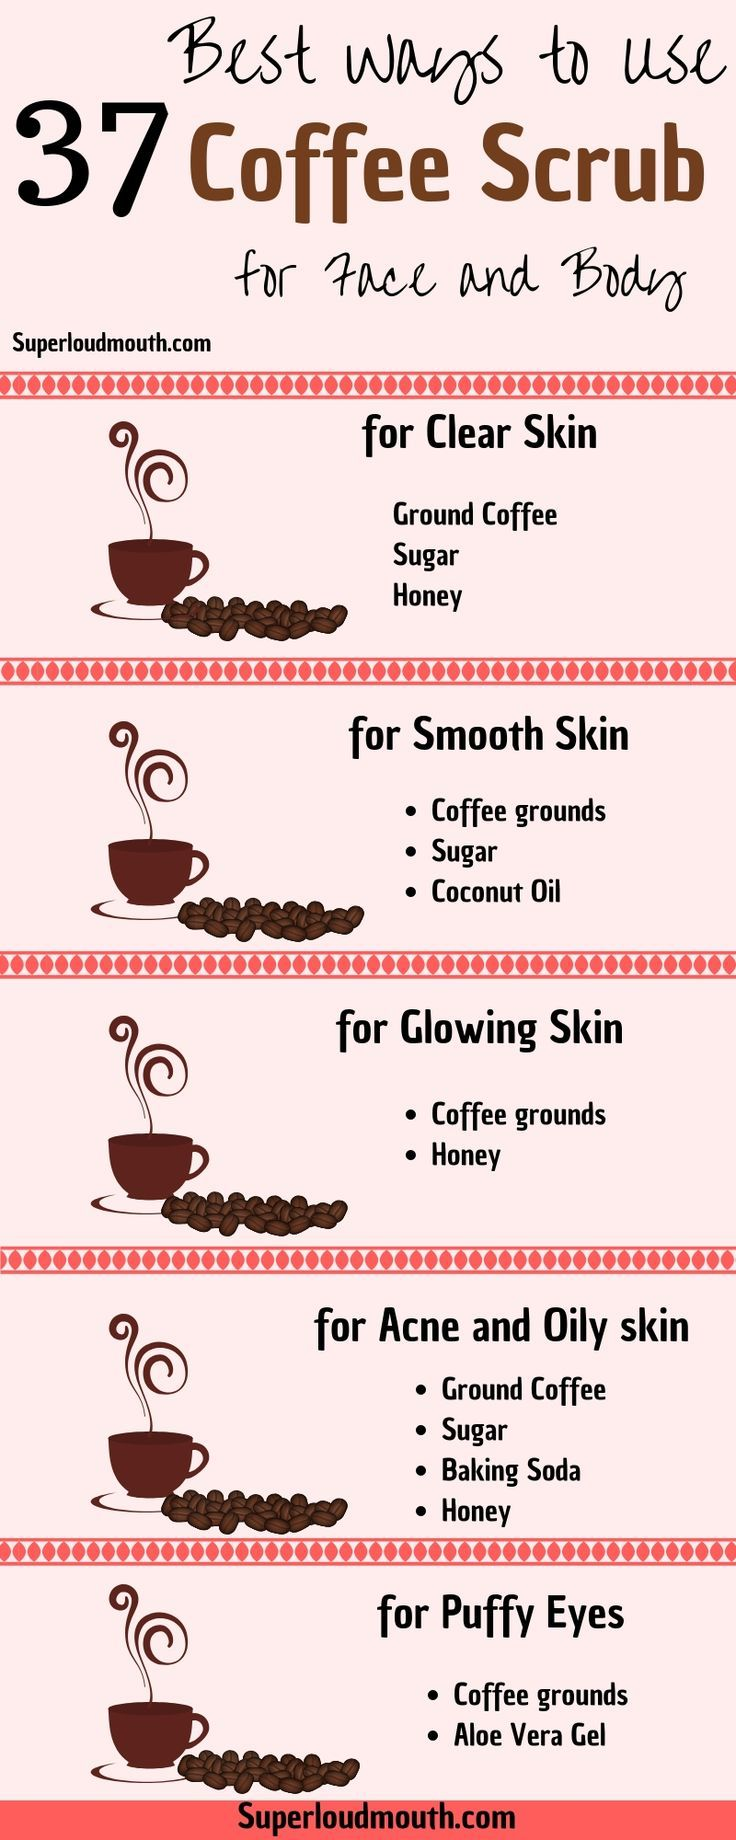 Photo of 37 Diy Coffee Scrub Recipes for a Beautiful Face, Body and Cellulite